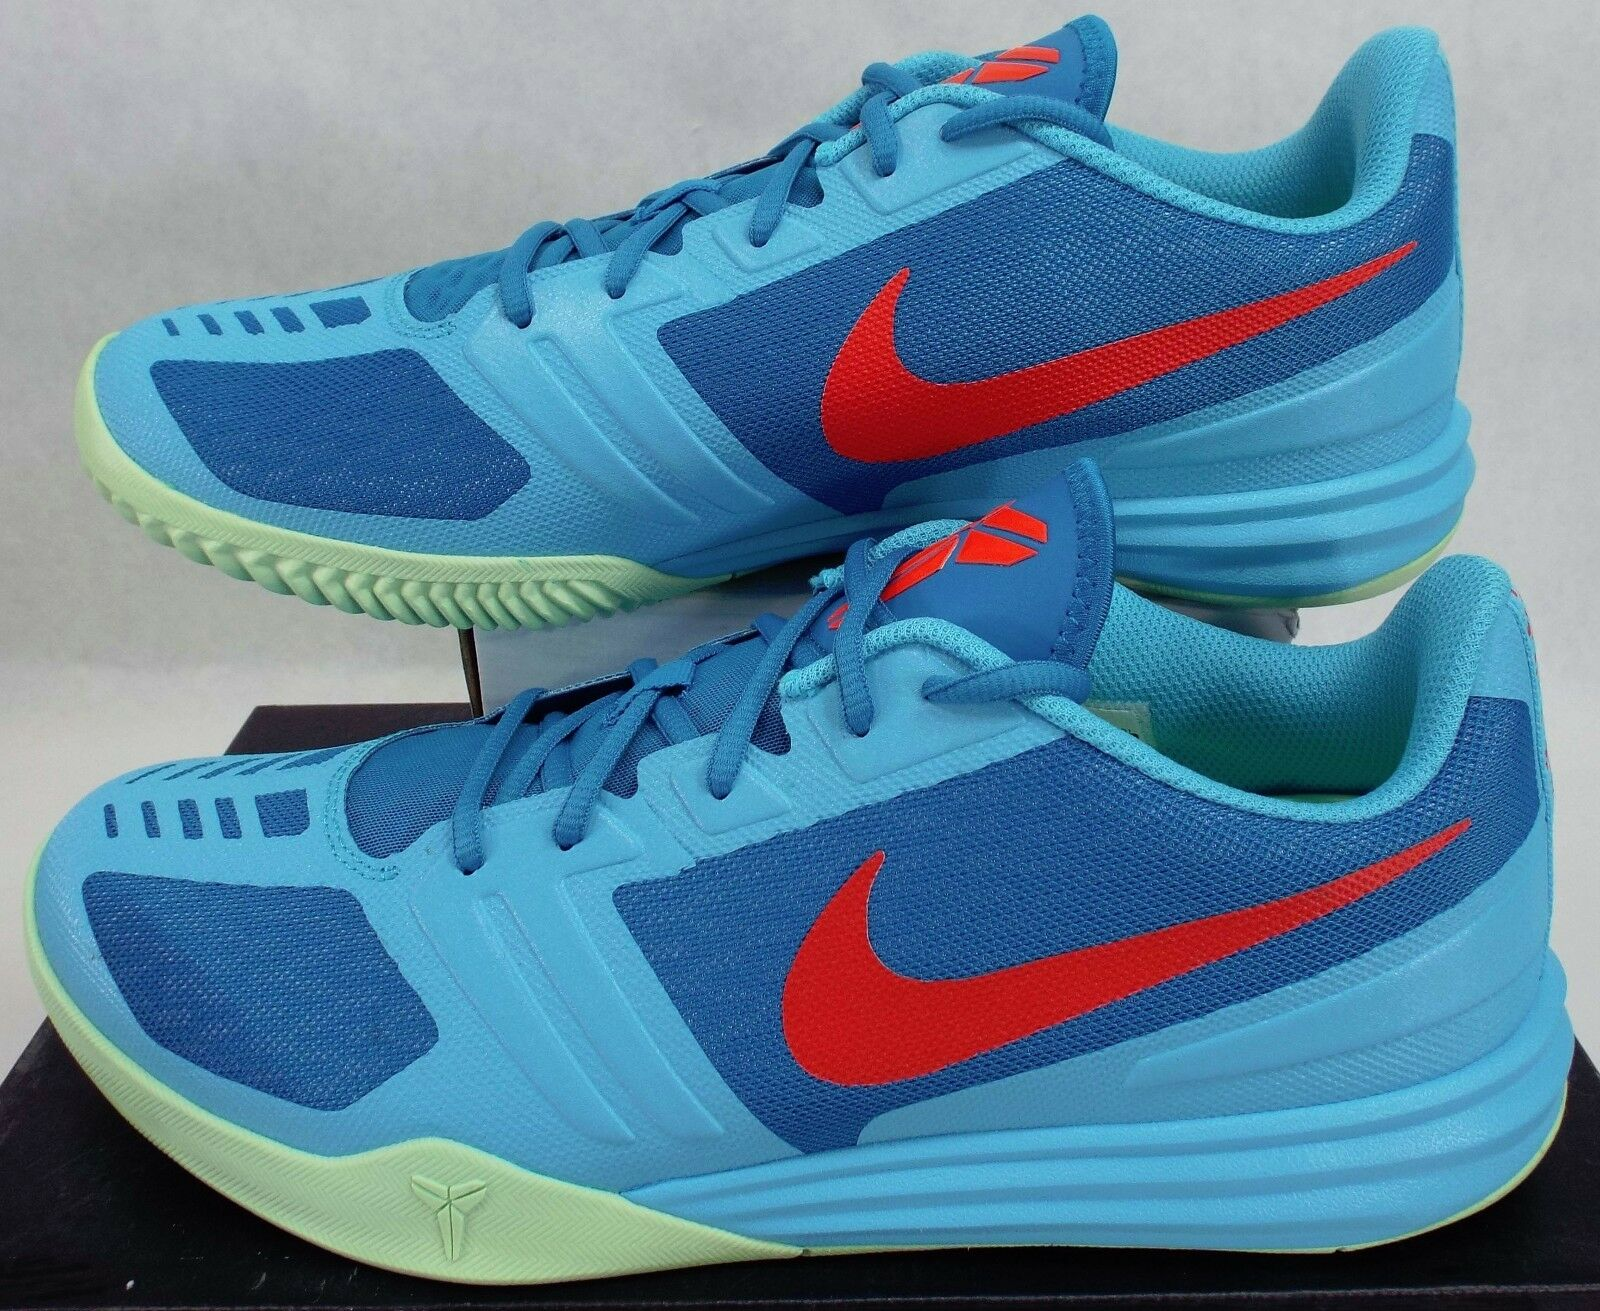 New Mens 12 NIKE KB Mentality Clearwater bluee shoes  100 704942-400